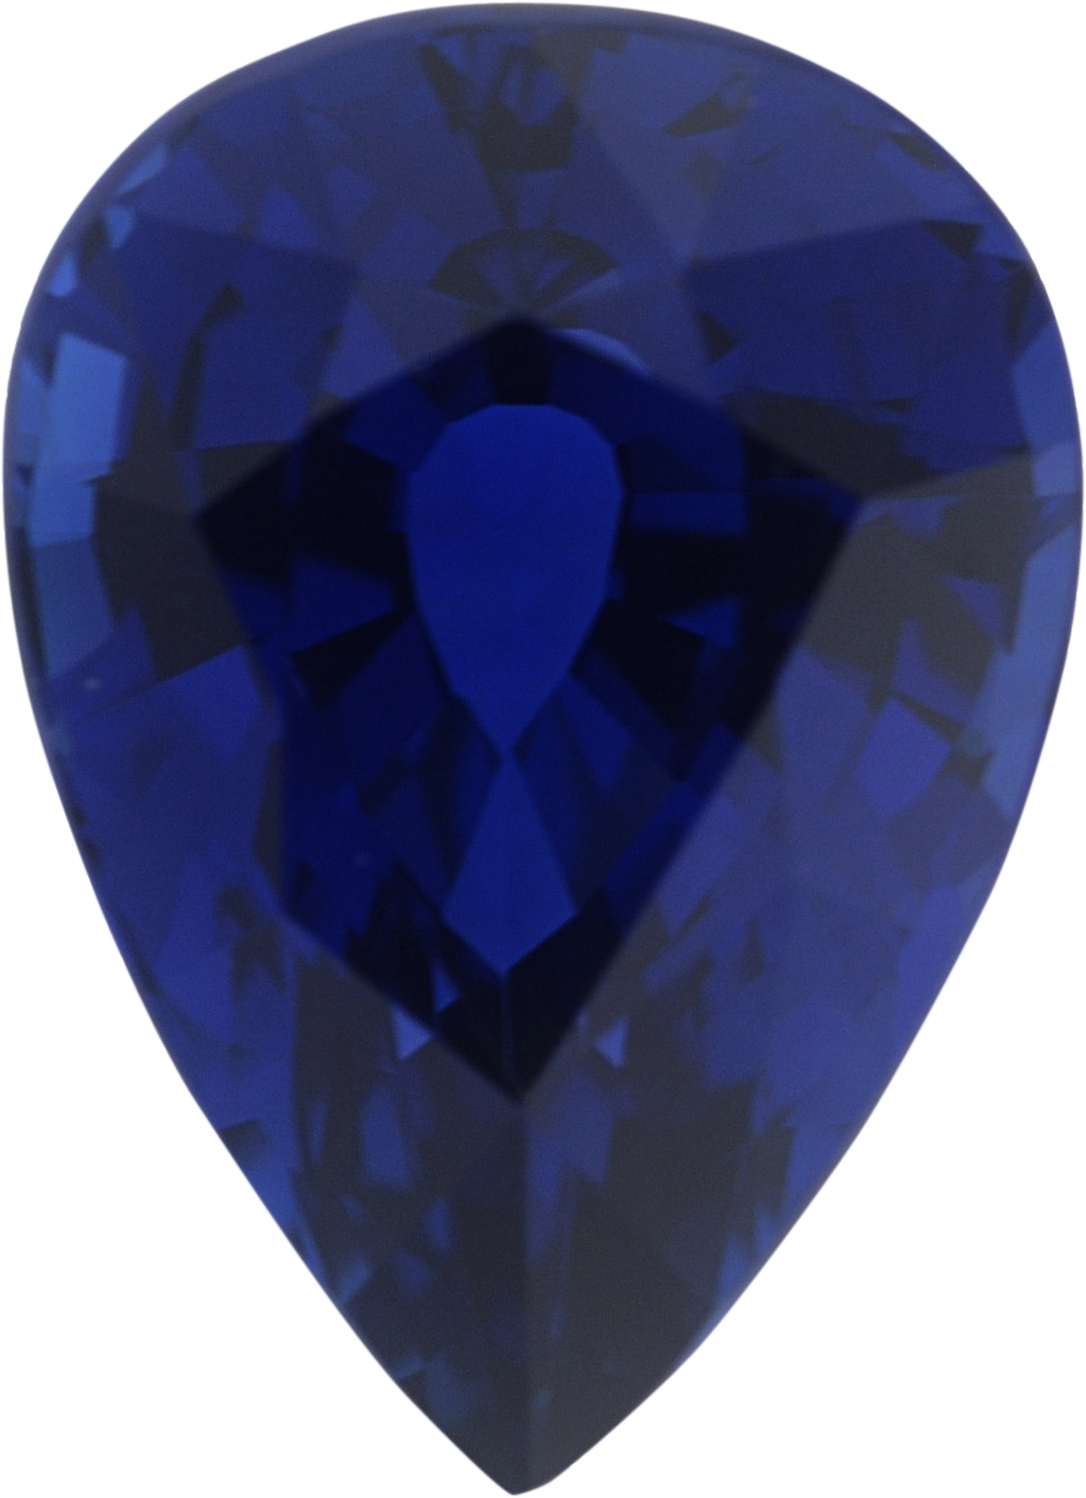 1.28 carats Blue Loose Sapphire Gemstone in Pear Cut, 7.63 x 5.53 mm